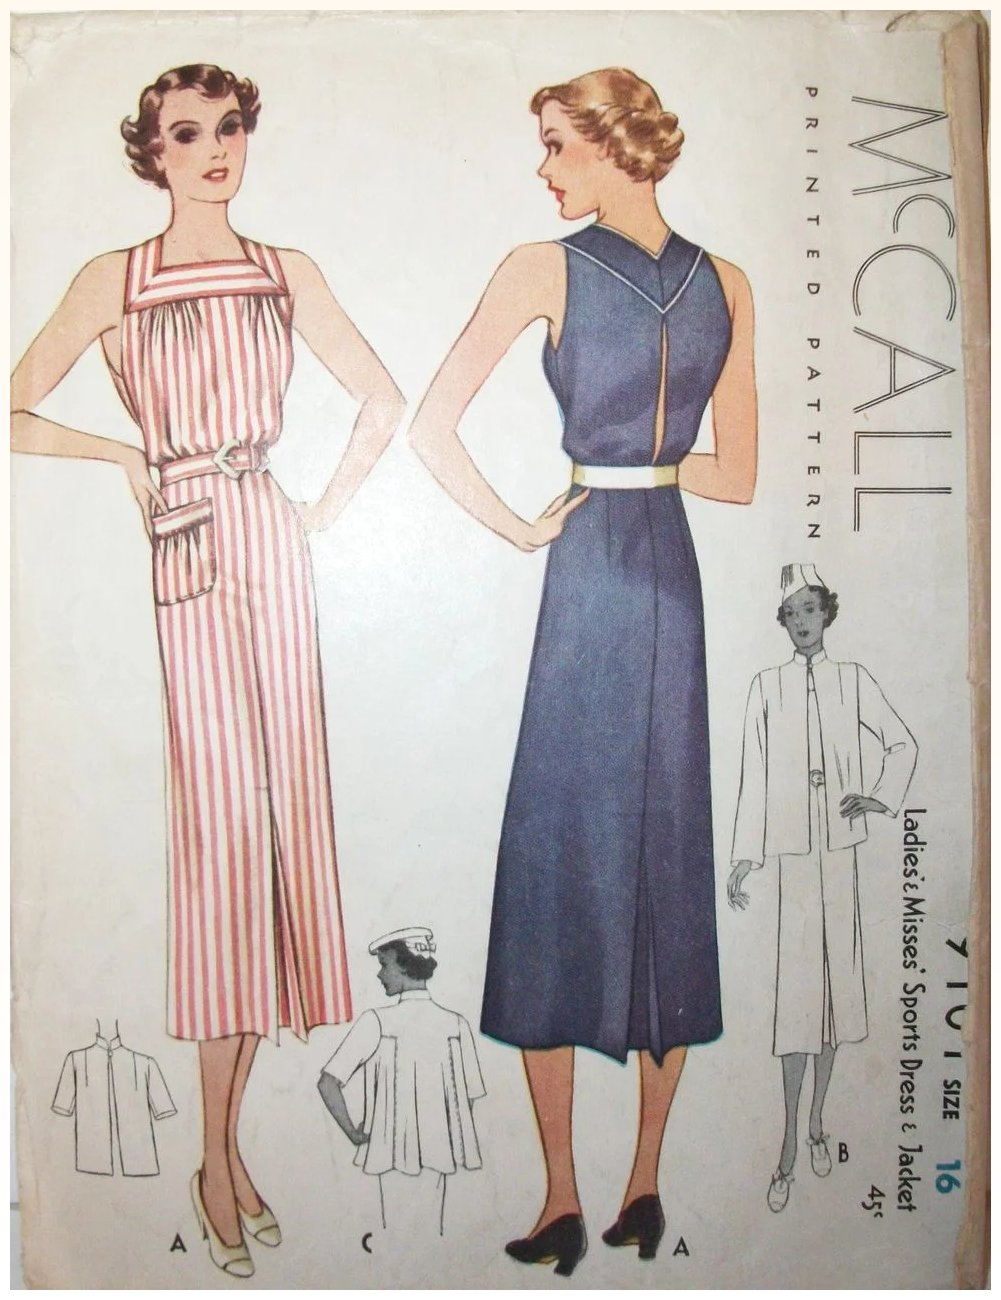 Vintage 1930s dress swing jacket printed sewing pattern vintage sewing pattern from the late 1930s is from mccalls pattern company the dress and swing hem jacket are classified in the emerging fashion market jeuxipadfo Choice Image